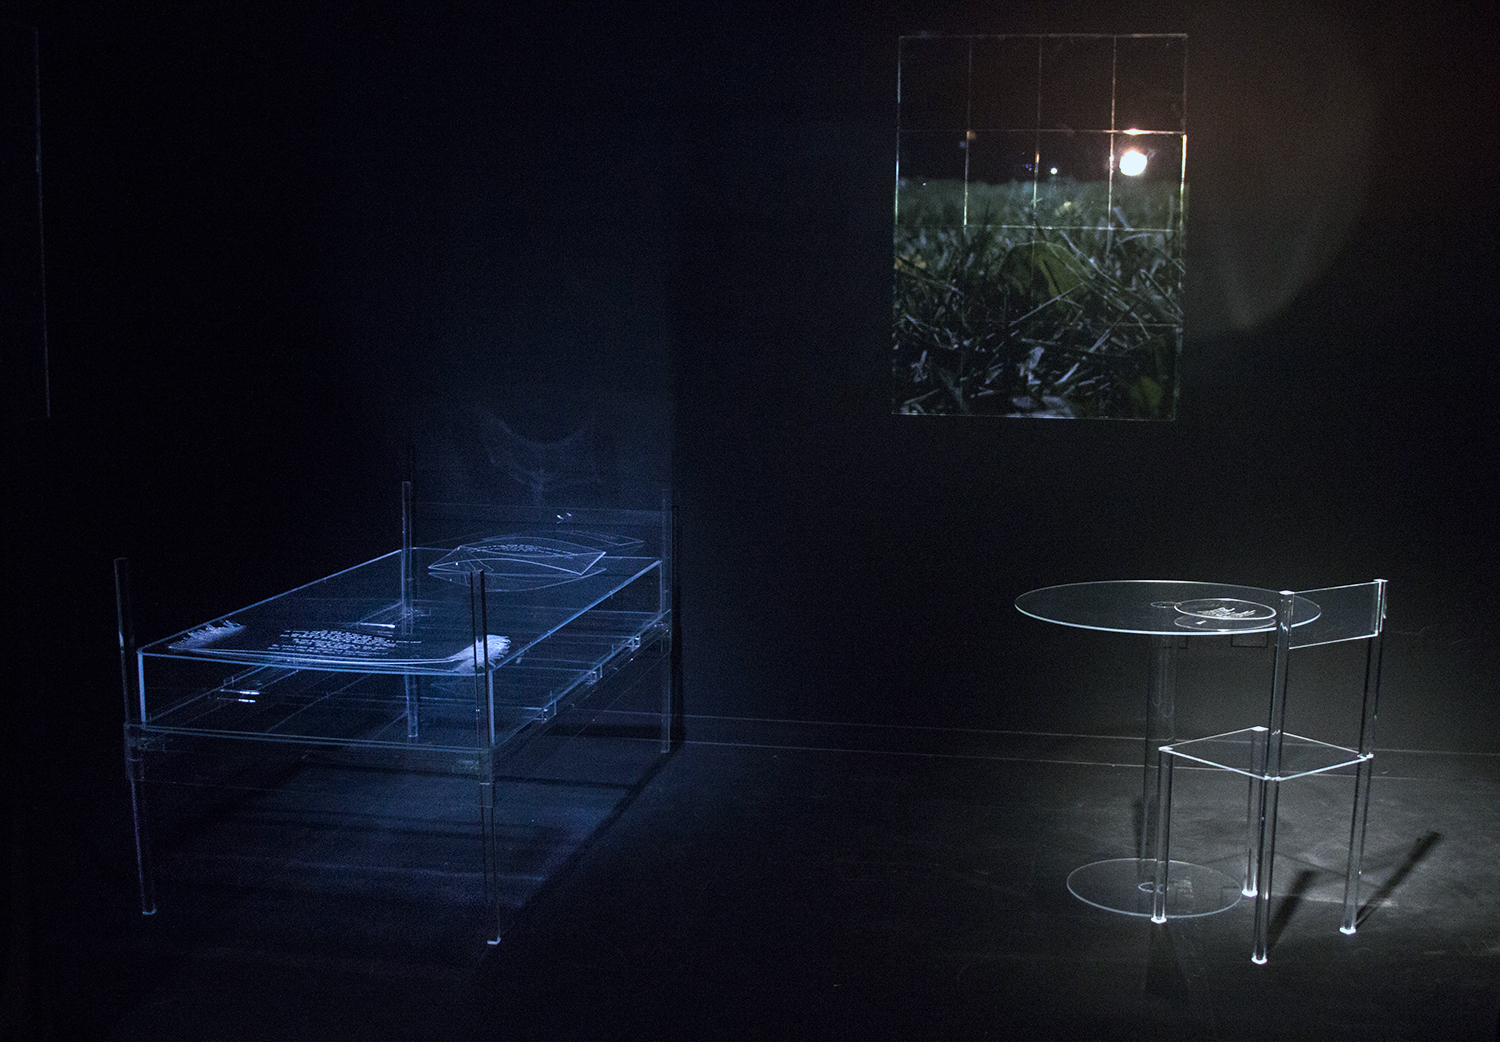 A view of one of the rooms in the installation.